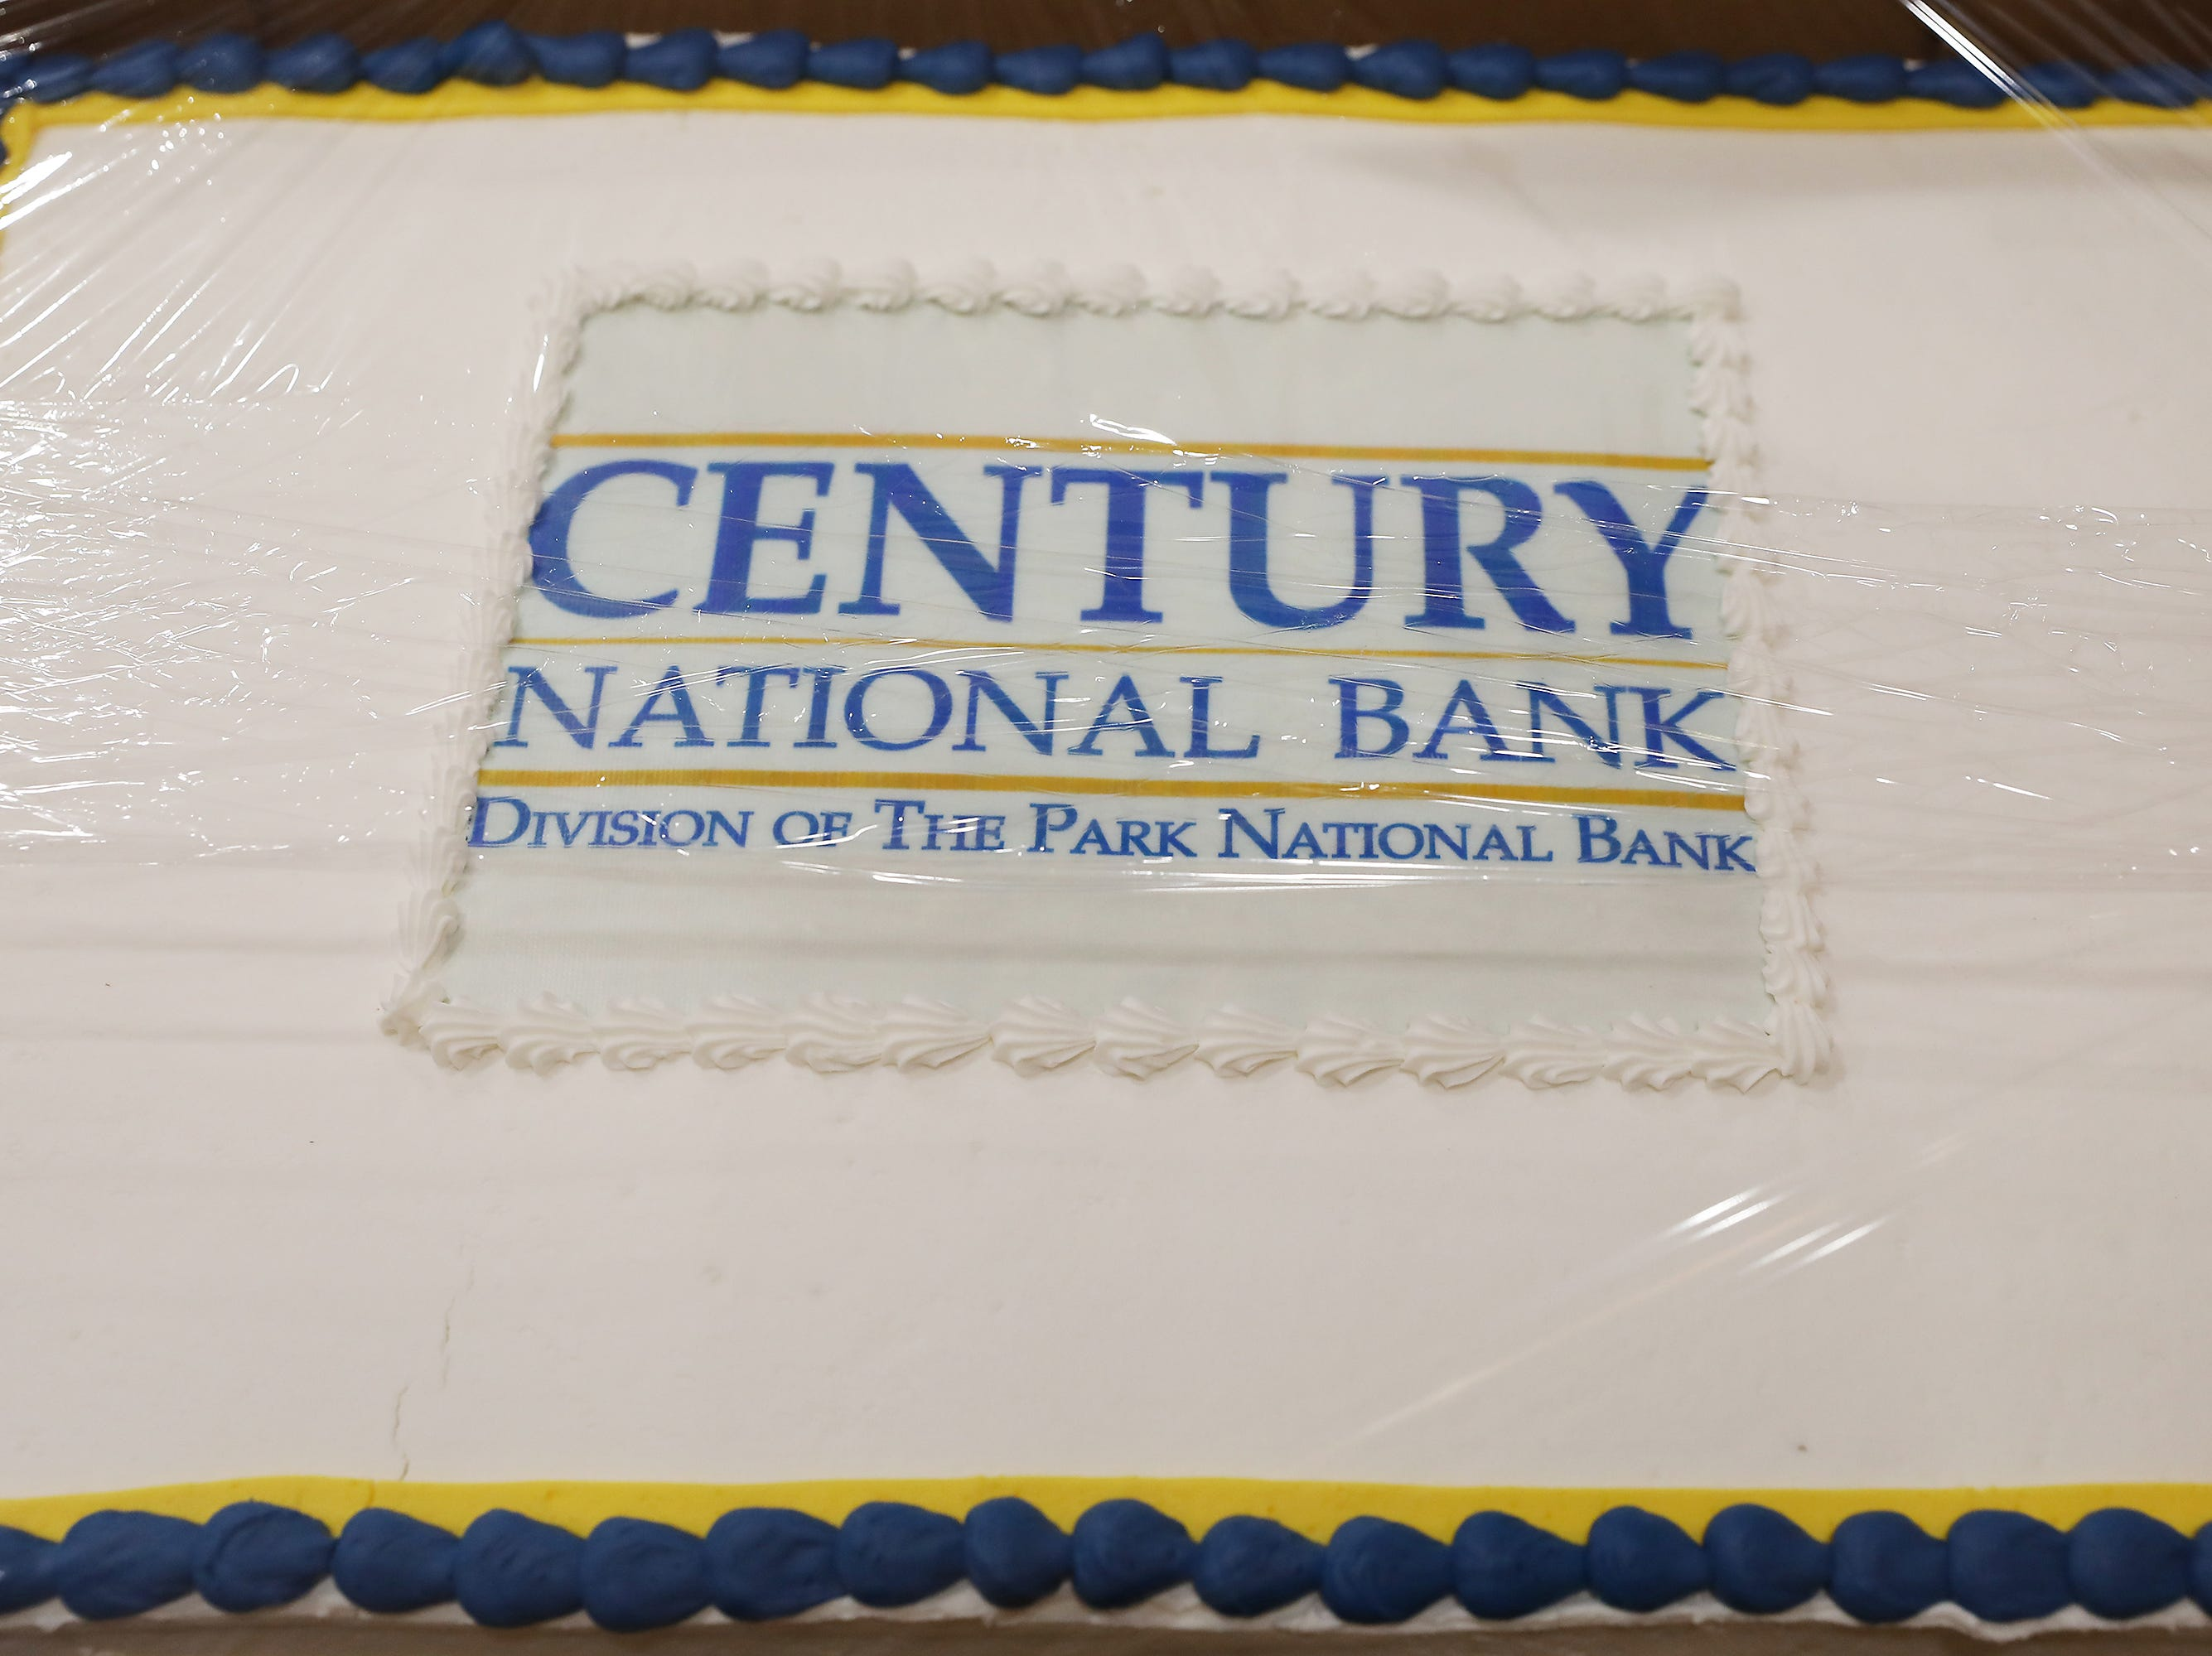 5:30 P.M. Friday cake 407 Century National Bank - $300 gift cards for Rittberger Meats and Shirer Bros Meats